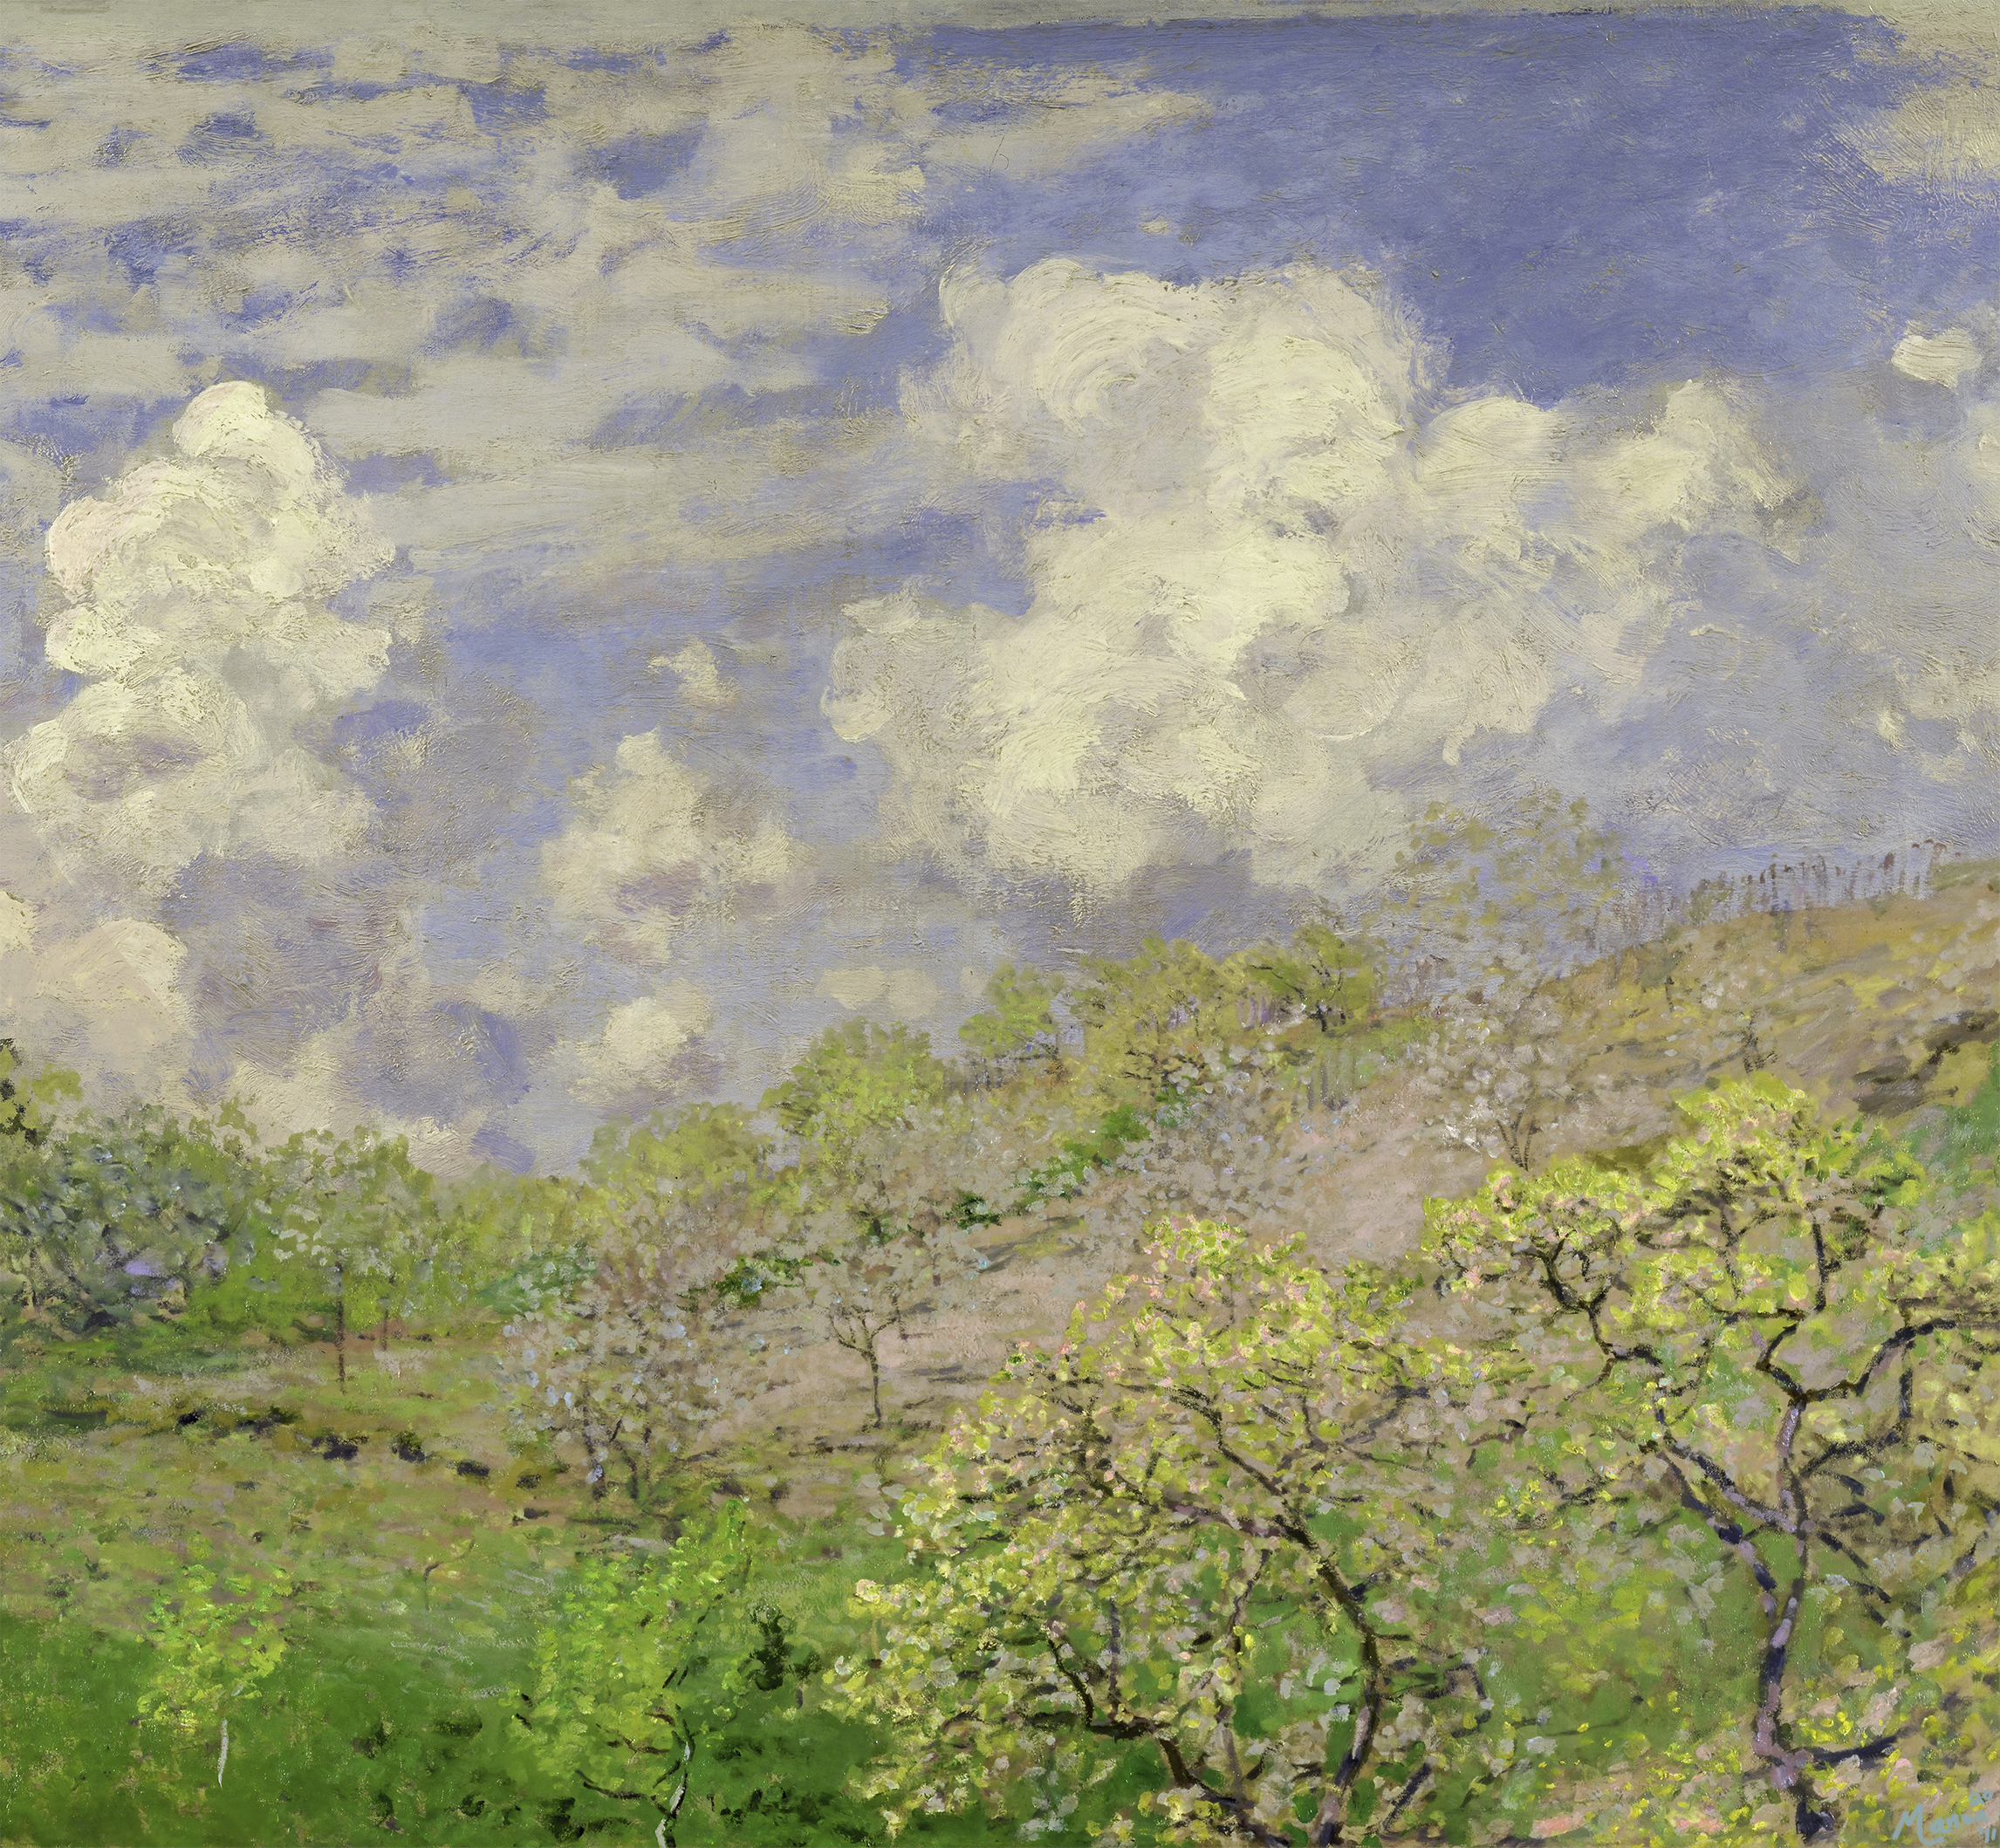 a springtime scene of trees on a hill with blue and pink flowers